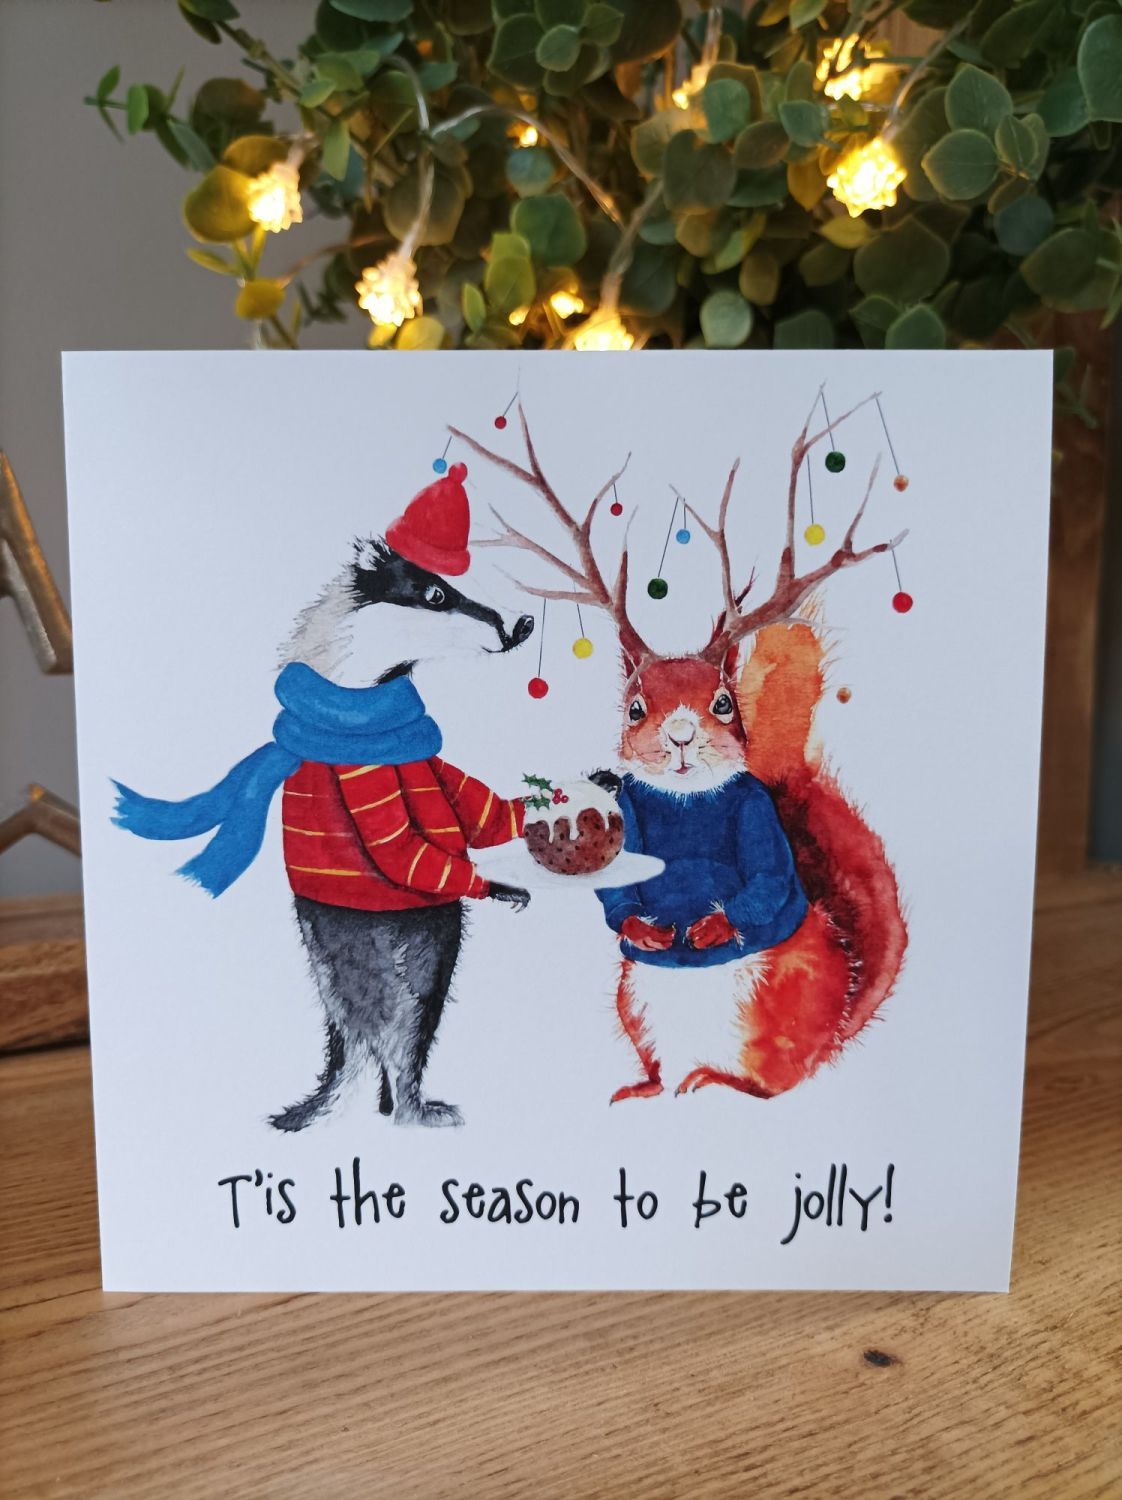 T'is the season to be jolly!